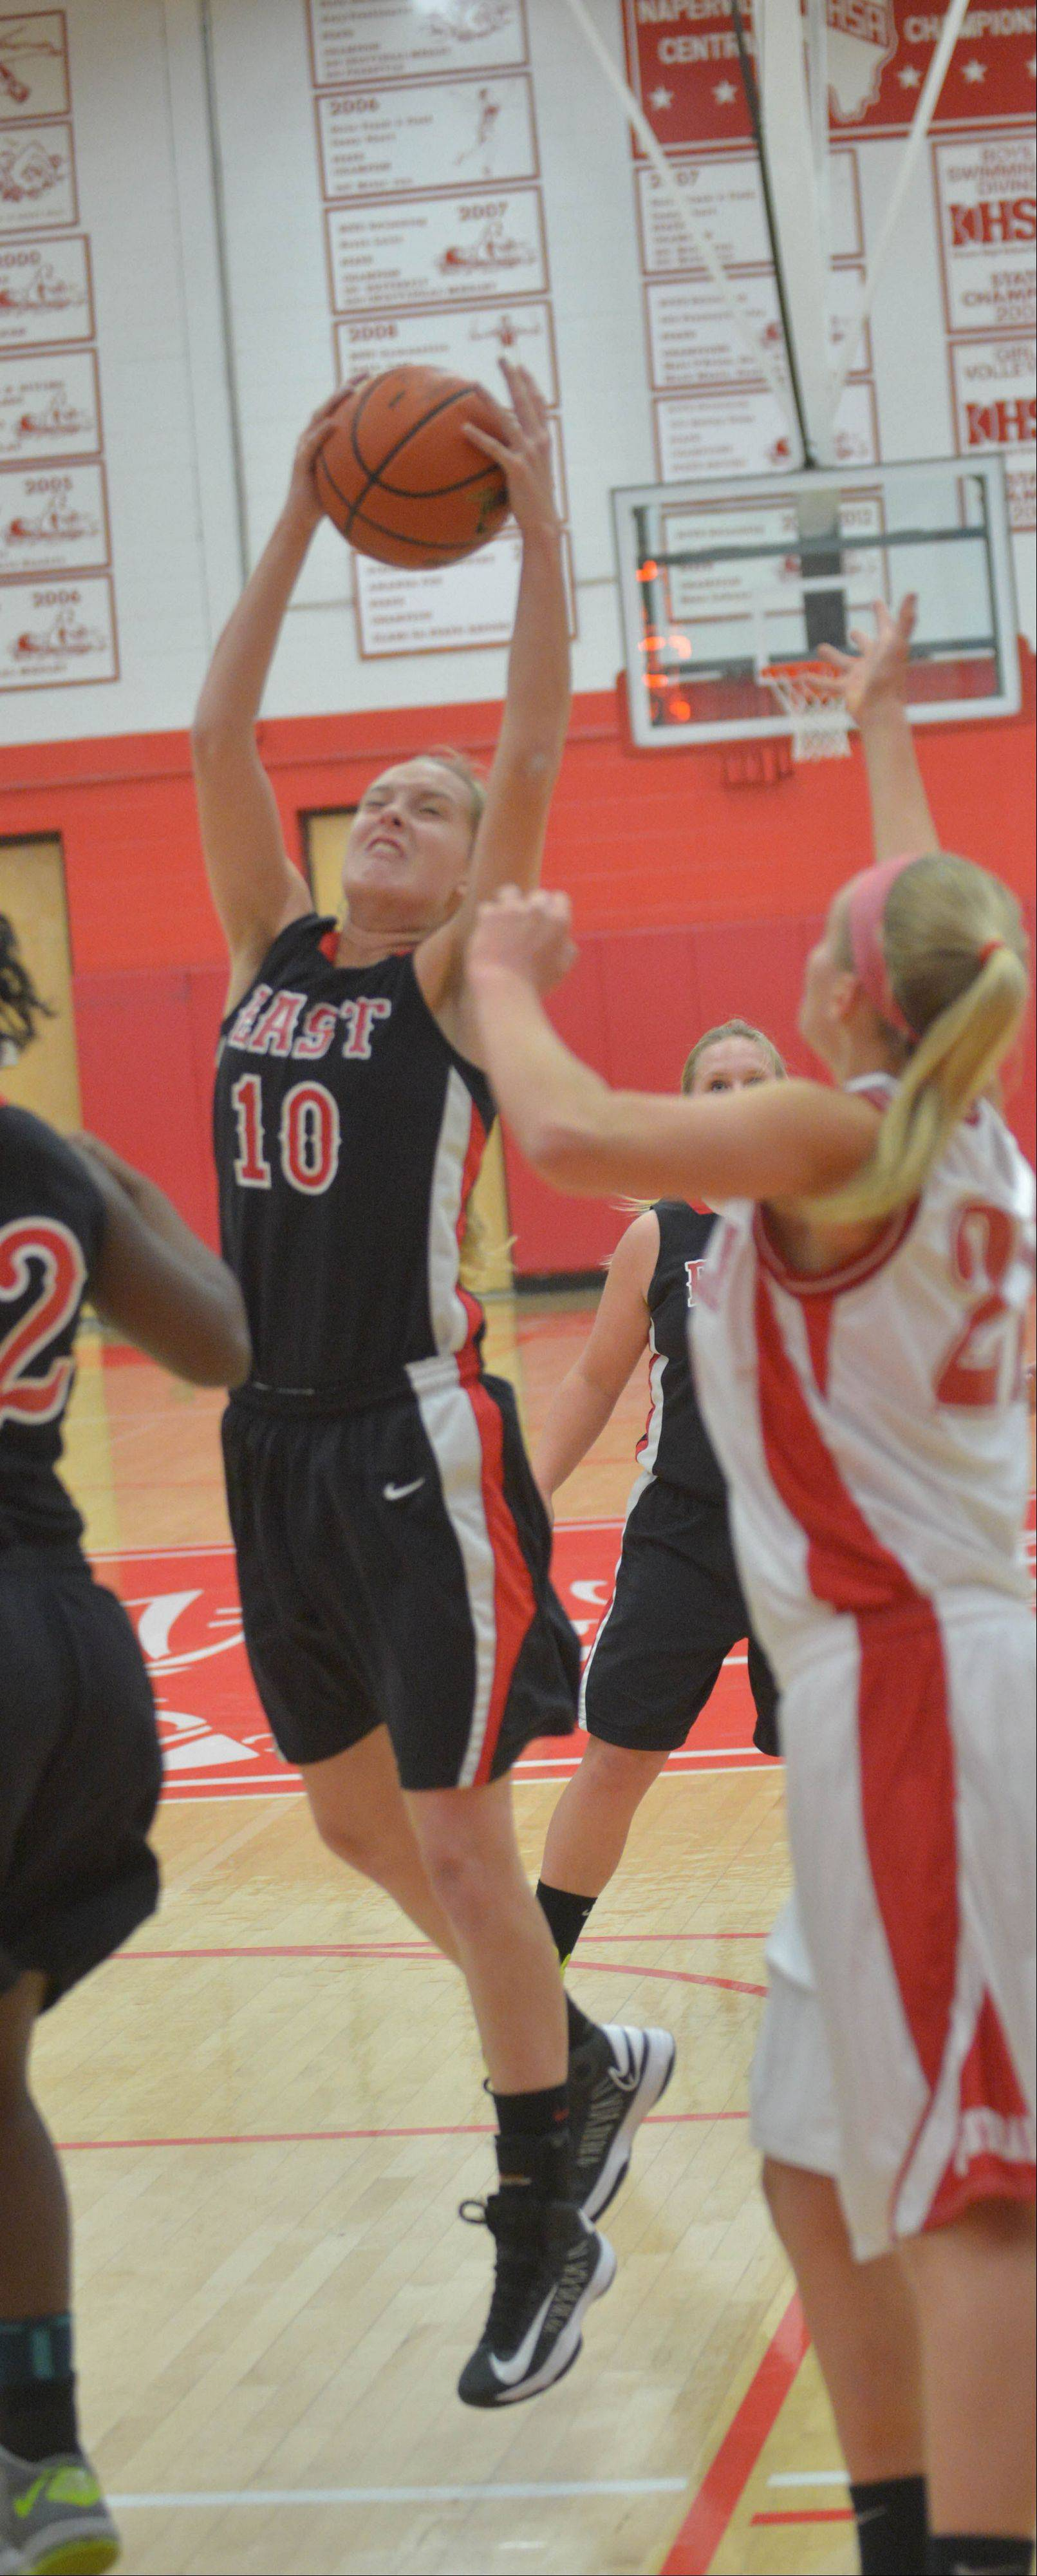 Allison Hansen of Glrenbard East goes up for a rebound.